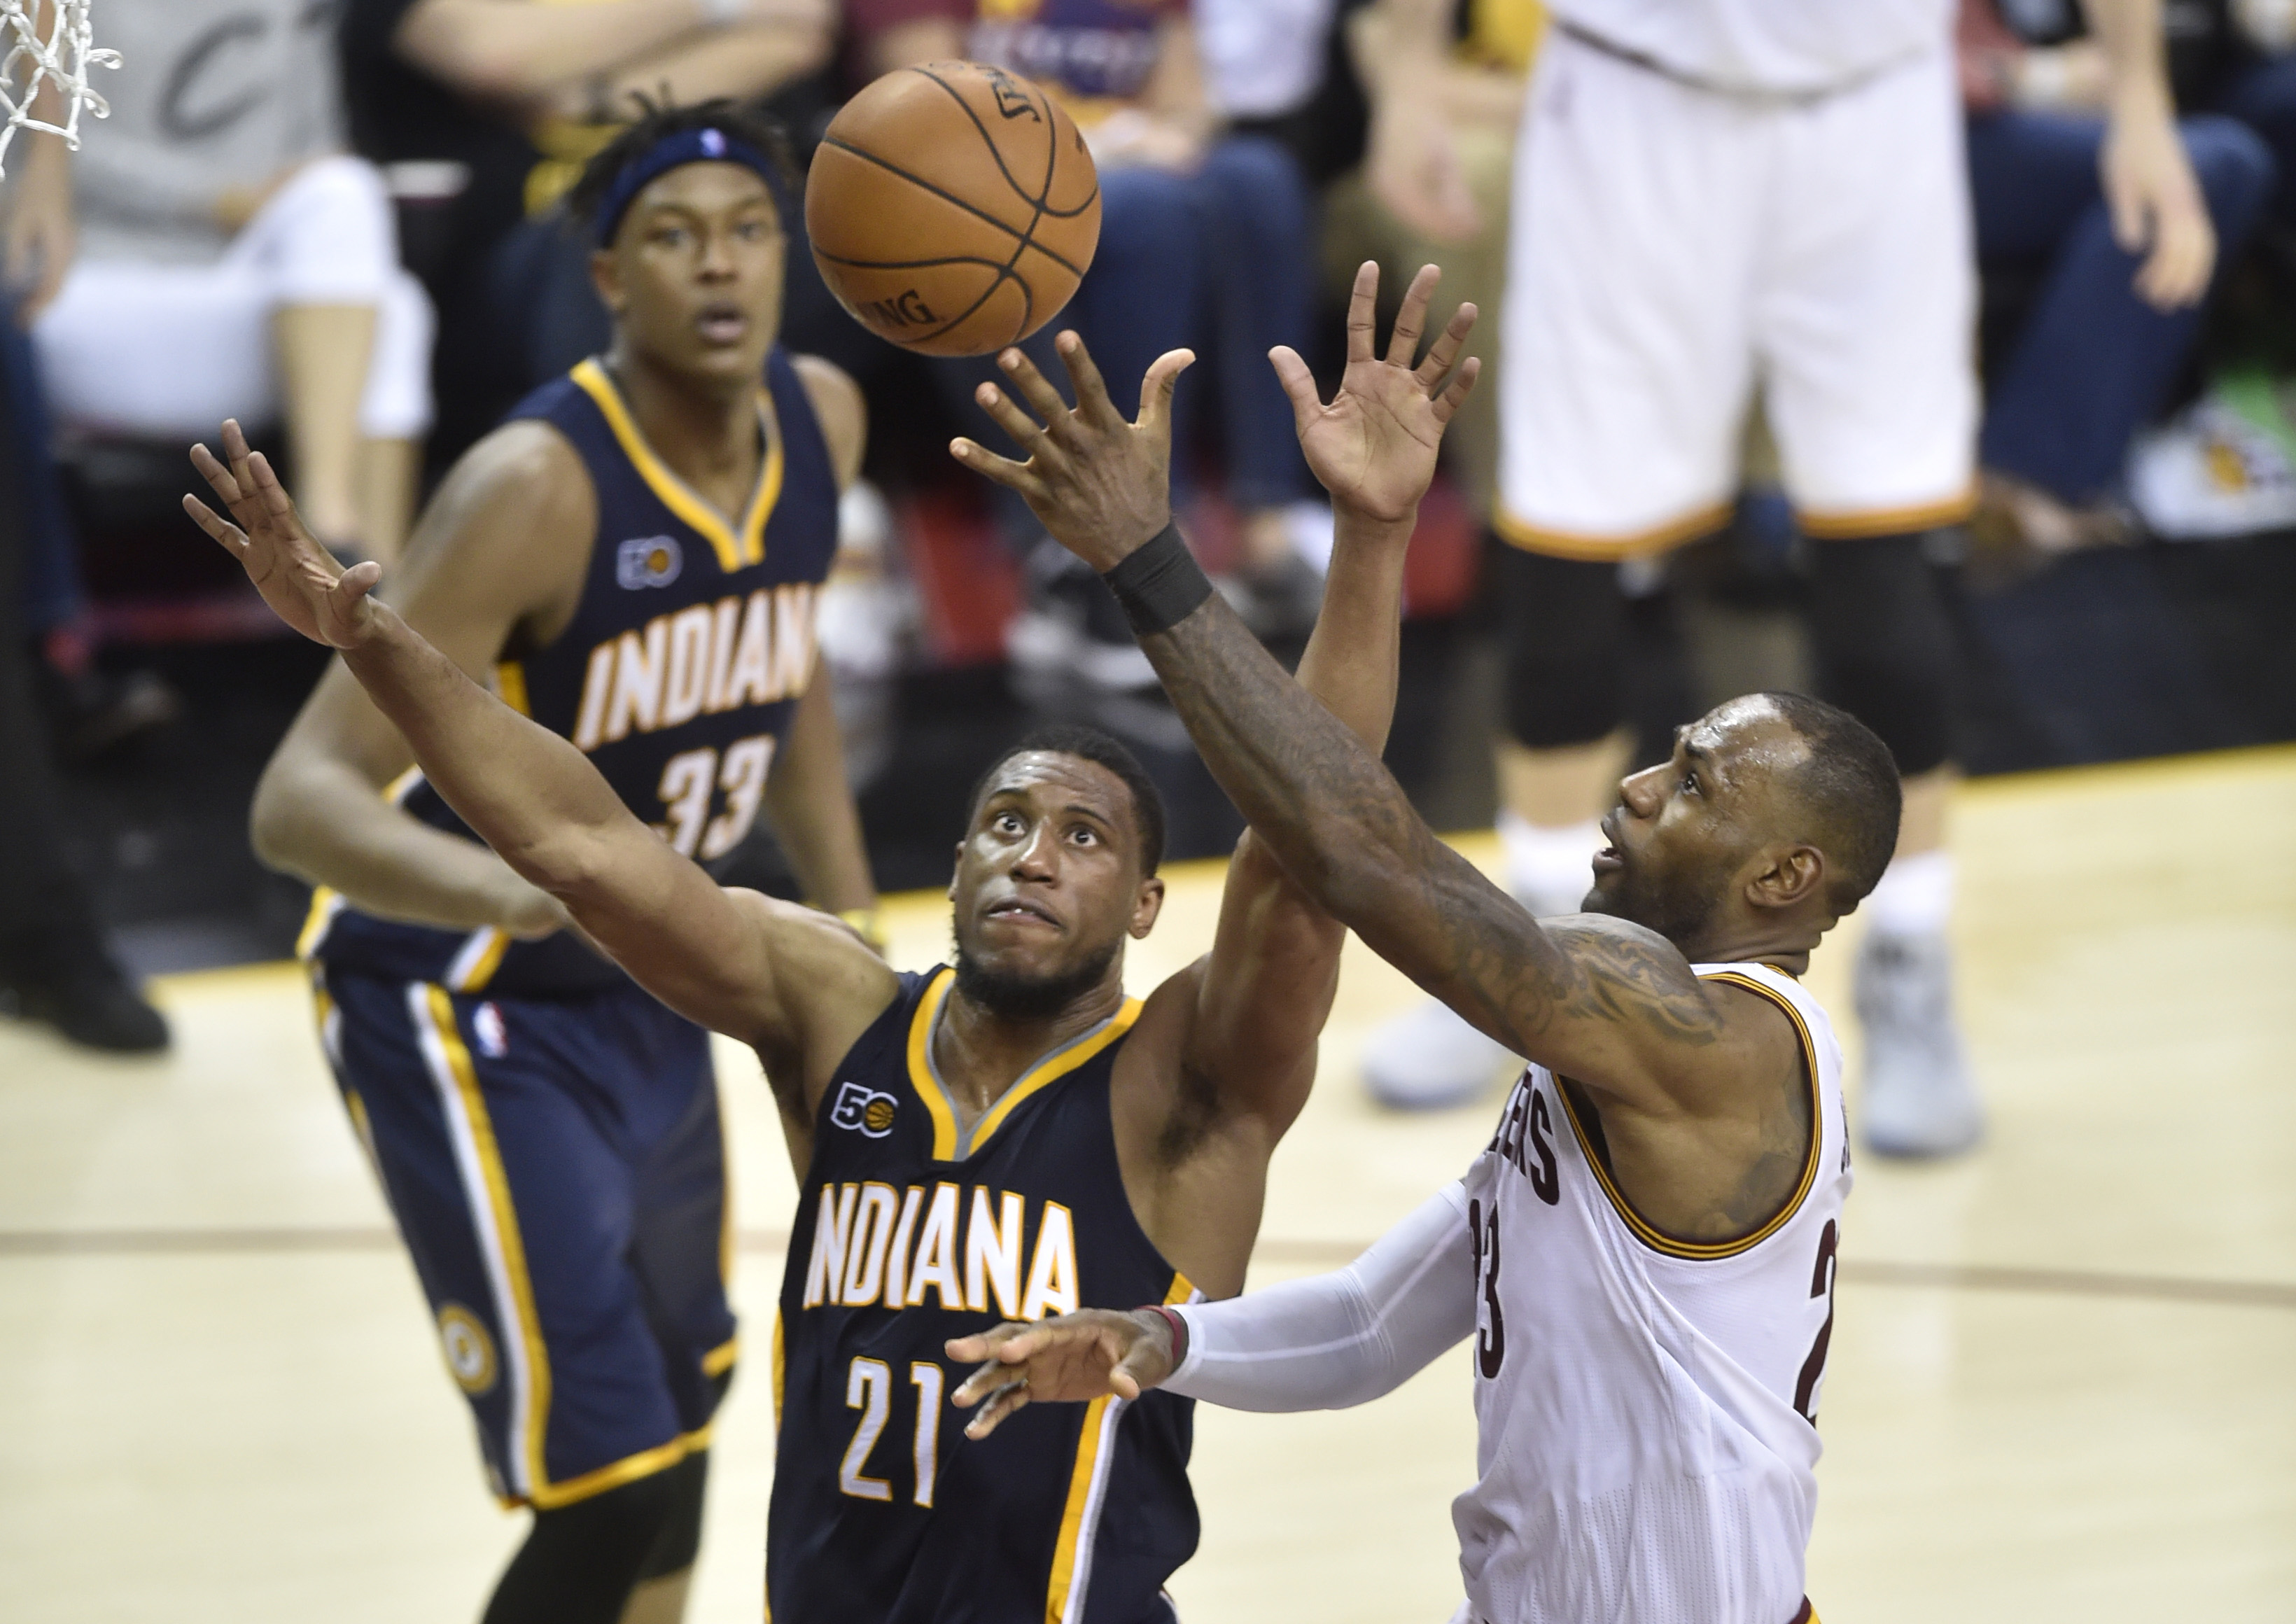 10014247-nba-playoffs-indiana-pacers-at-cleveland-cavaliers